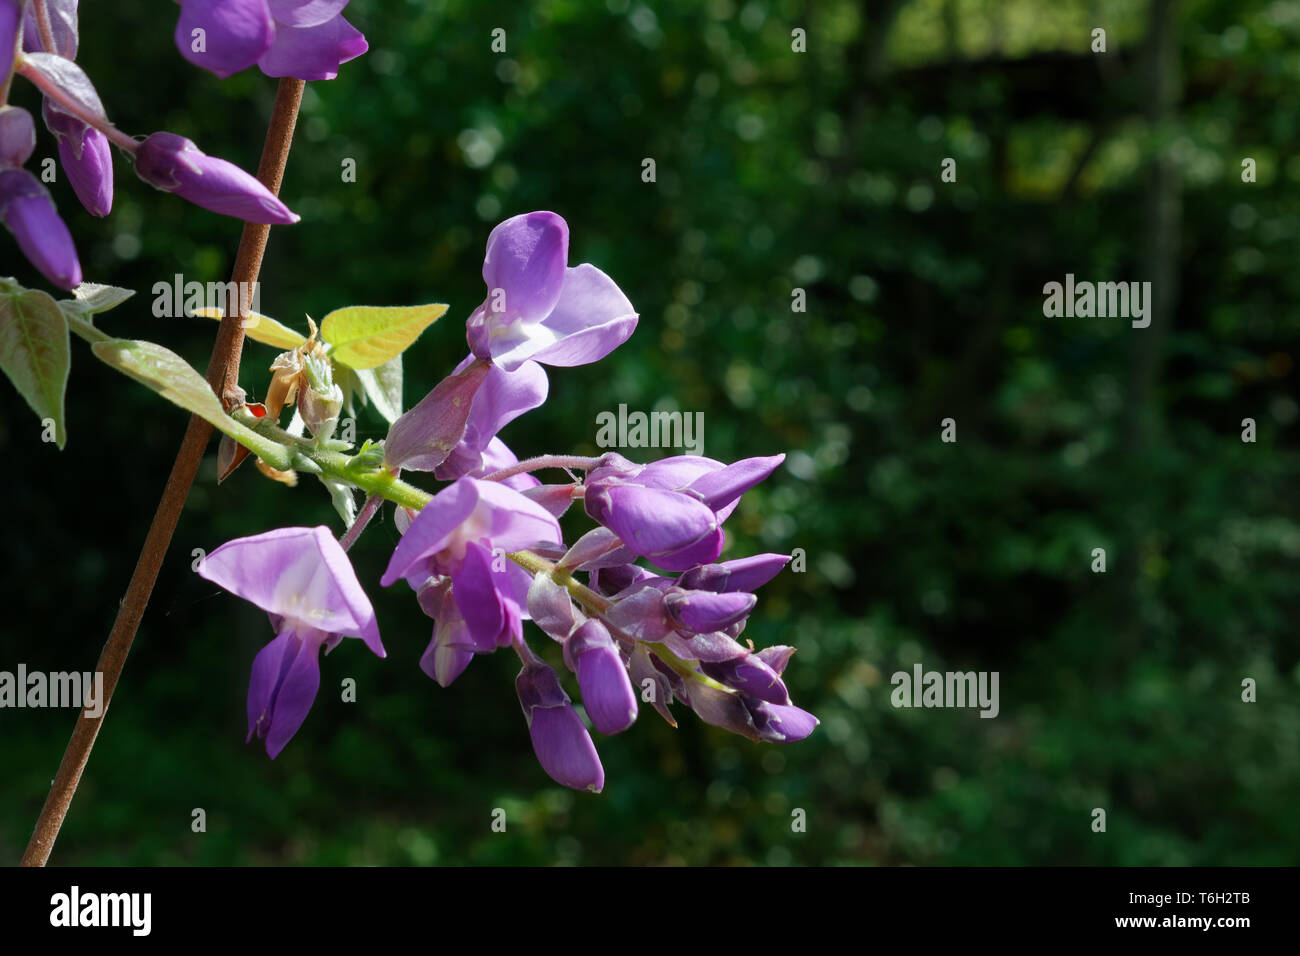 Detail of the beautiful delicate purple flowers of wisteria, against a green natural background - Stock Image